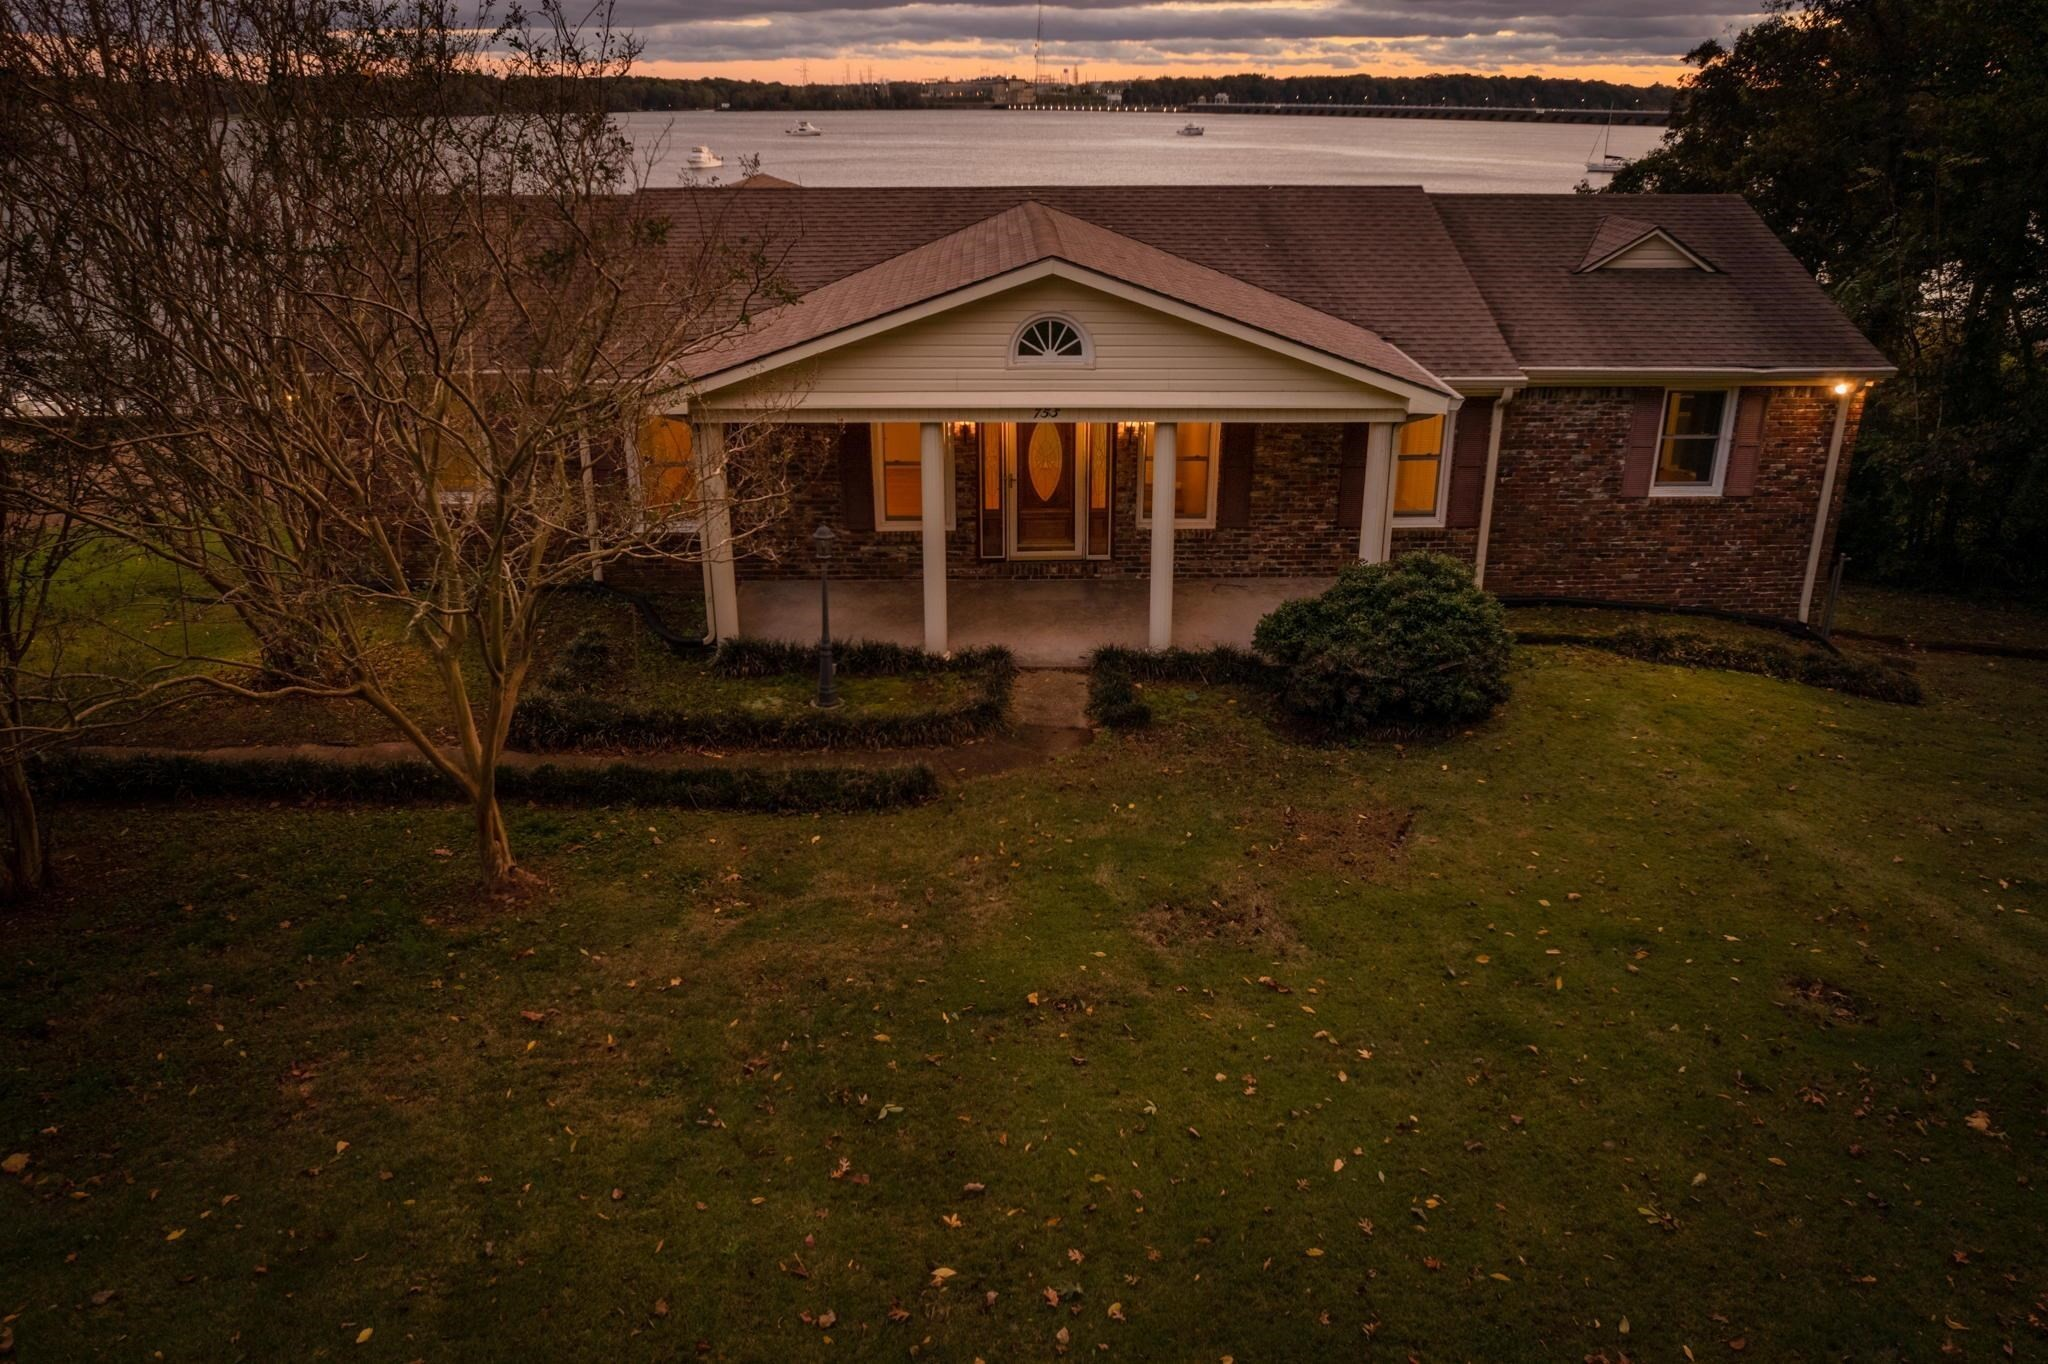 4-Bedroom House In Lakeside Highlands